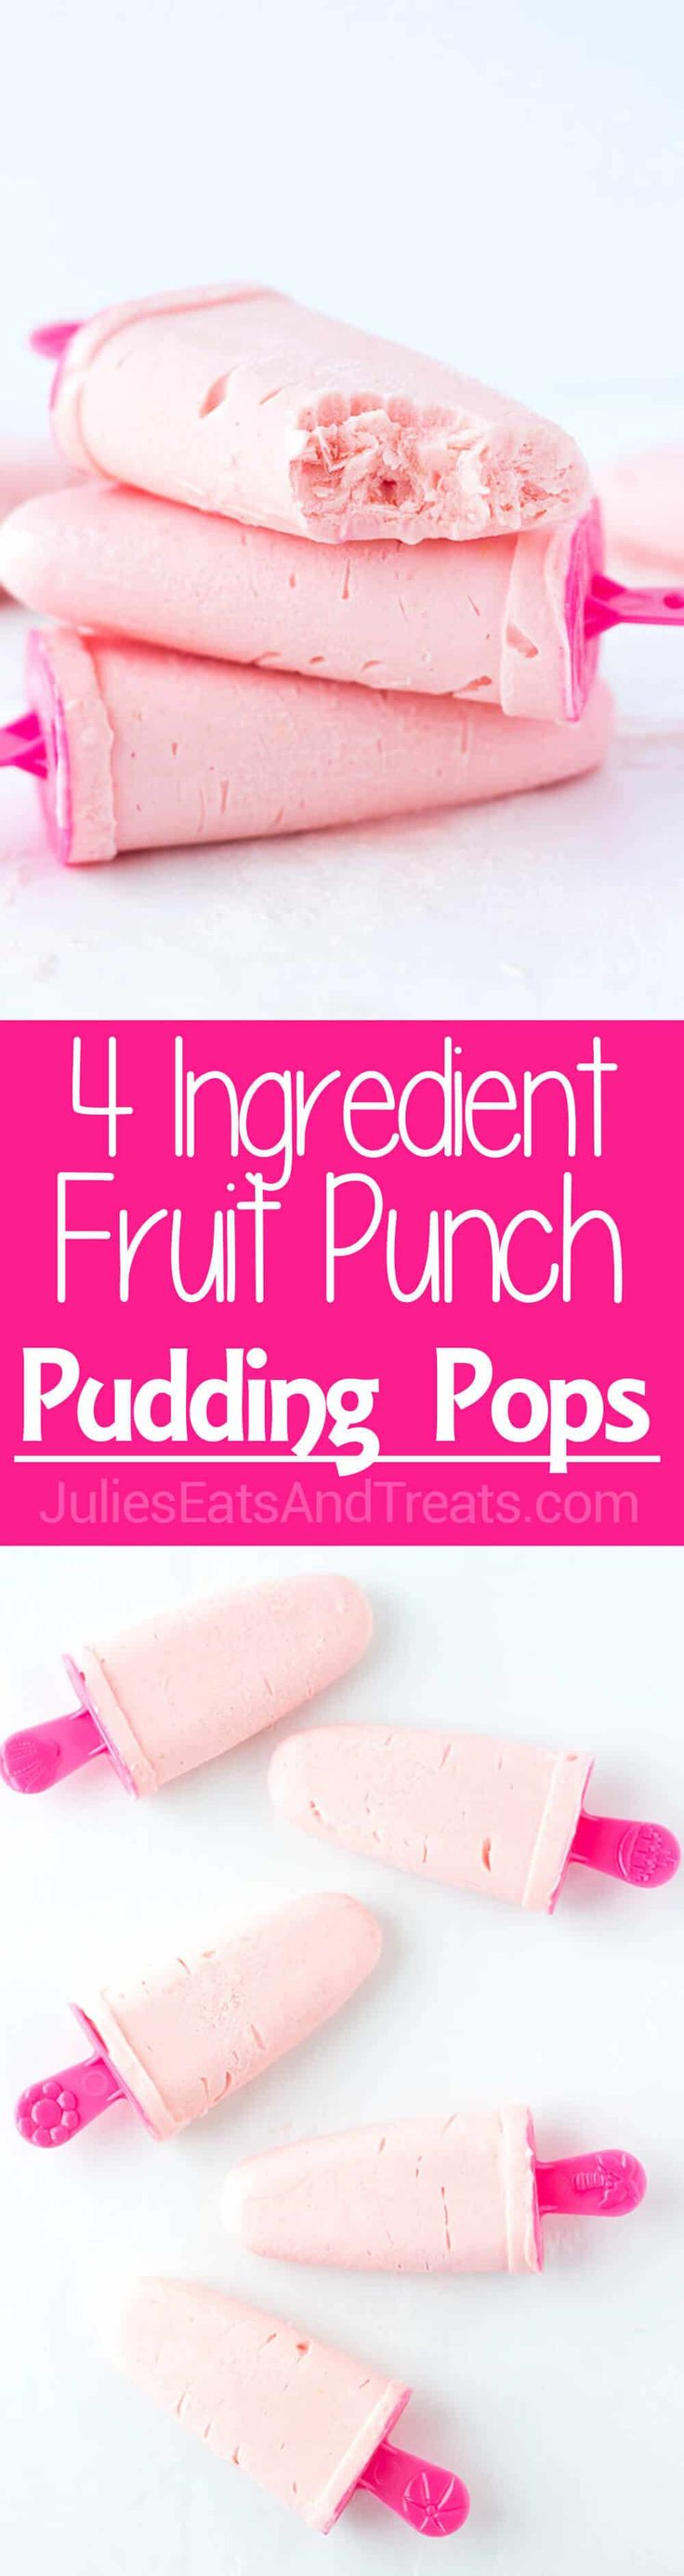 4-Ingredient Fruit Punch Pudding Pops: An easy, fruity, frozen treat that the kids (and adults!) will love this summer! Flavor the pudding pops with any juice flavor you love! ~ https://www.julieseatsandtreats.com